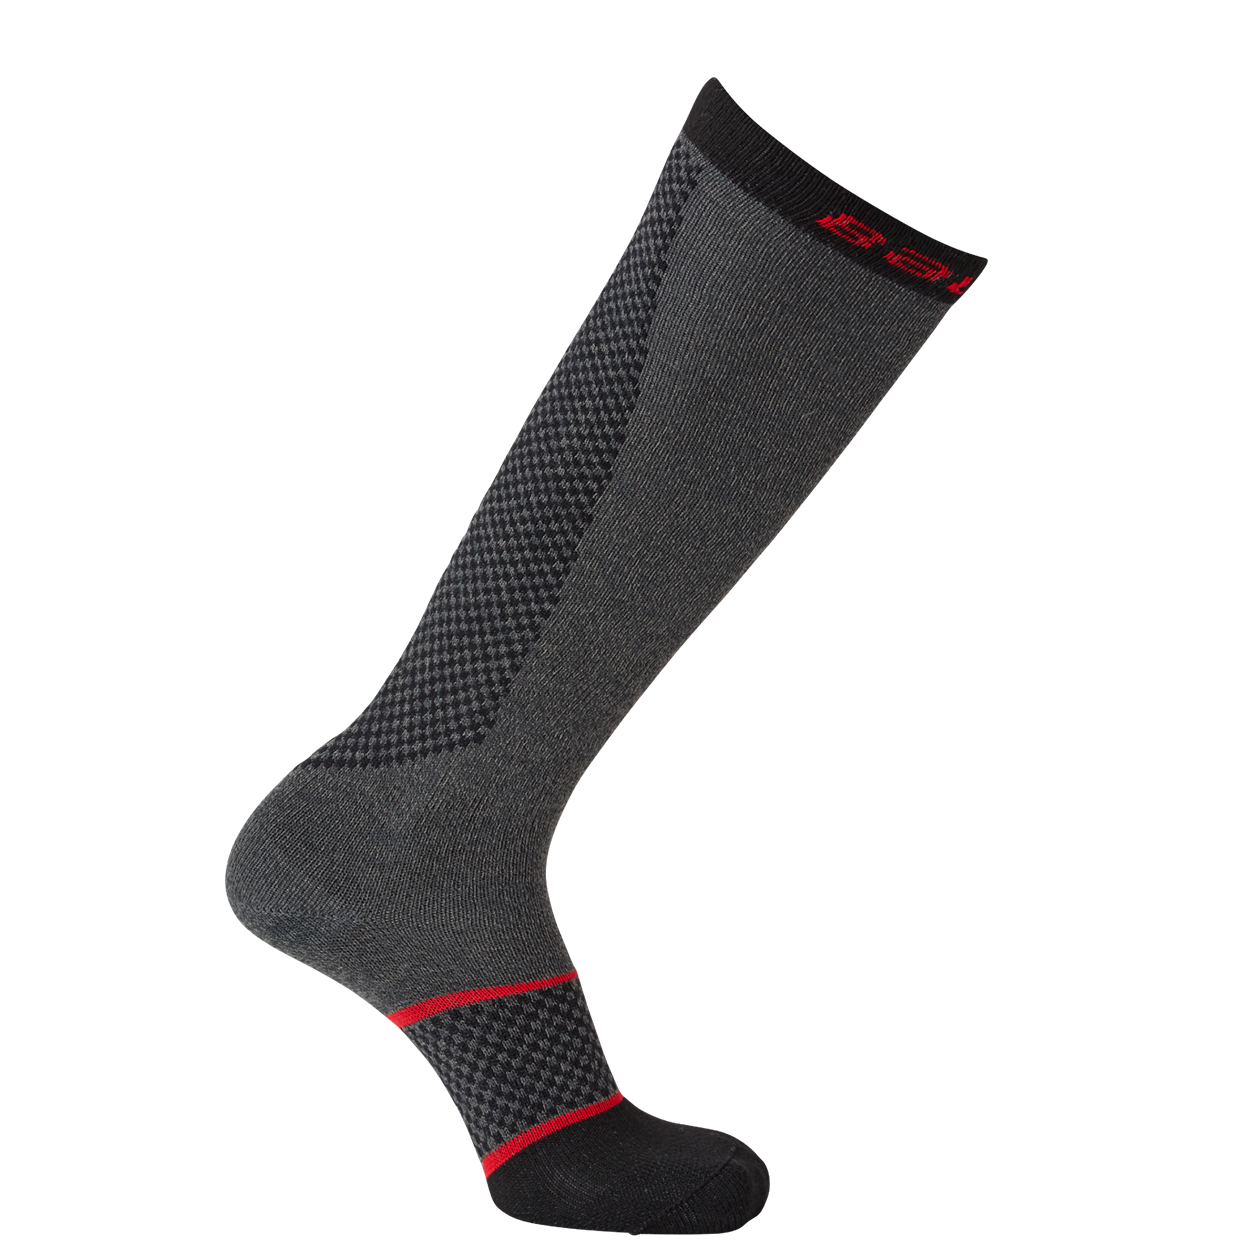 S19 PRO CUT RESIST Tall Skate Sock,,Размер M